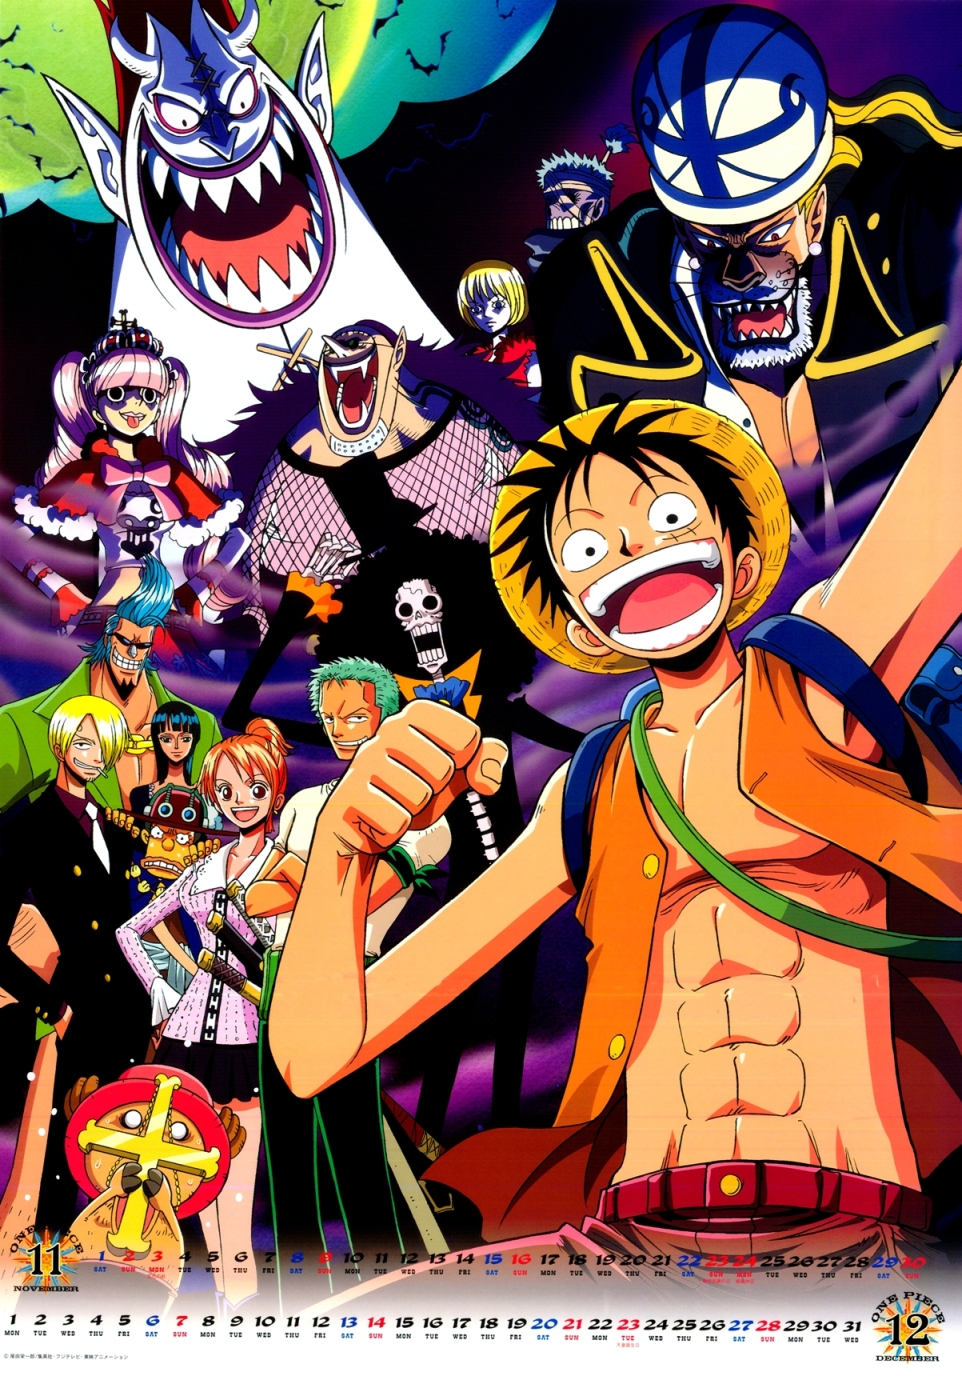 11-12 Thriller Bark and Straw Hats (One Piece 2008 Calendar)